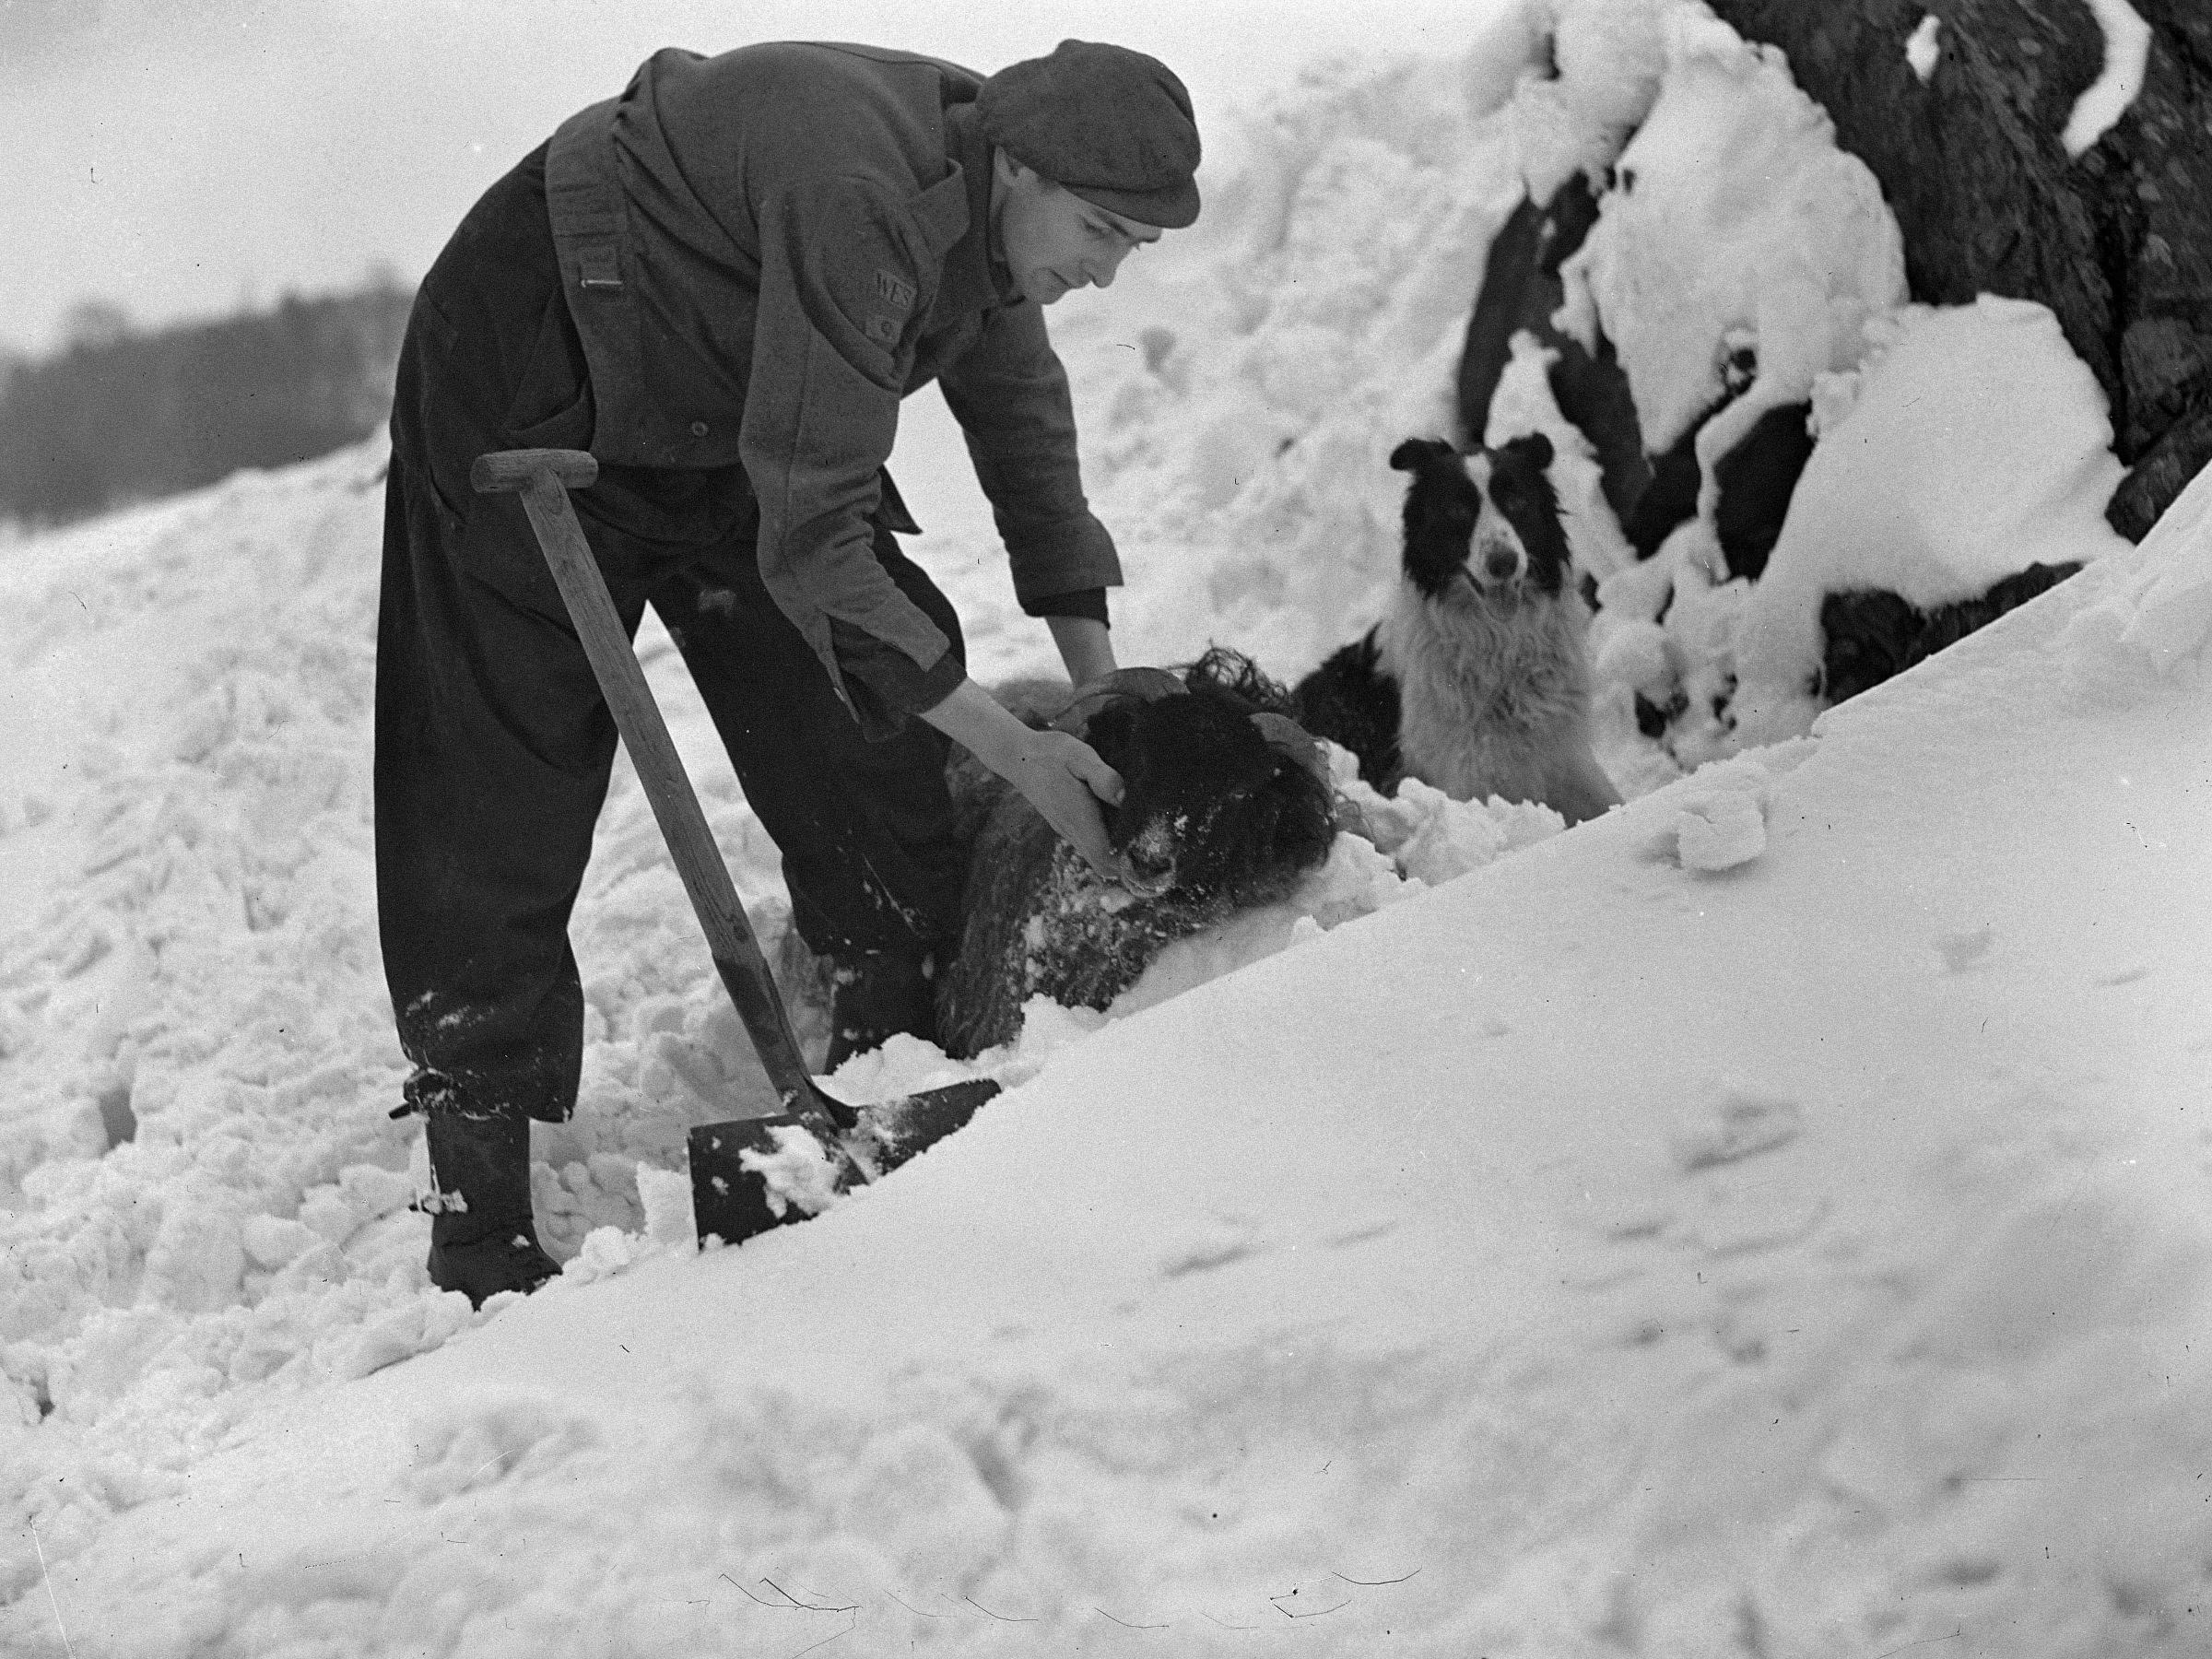 PICTURE FROM THE PAST: Farmer rescues trapped sheep